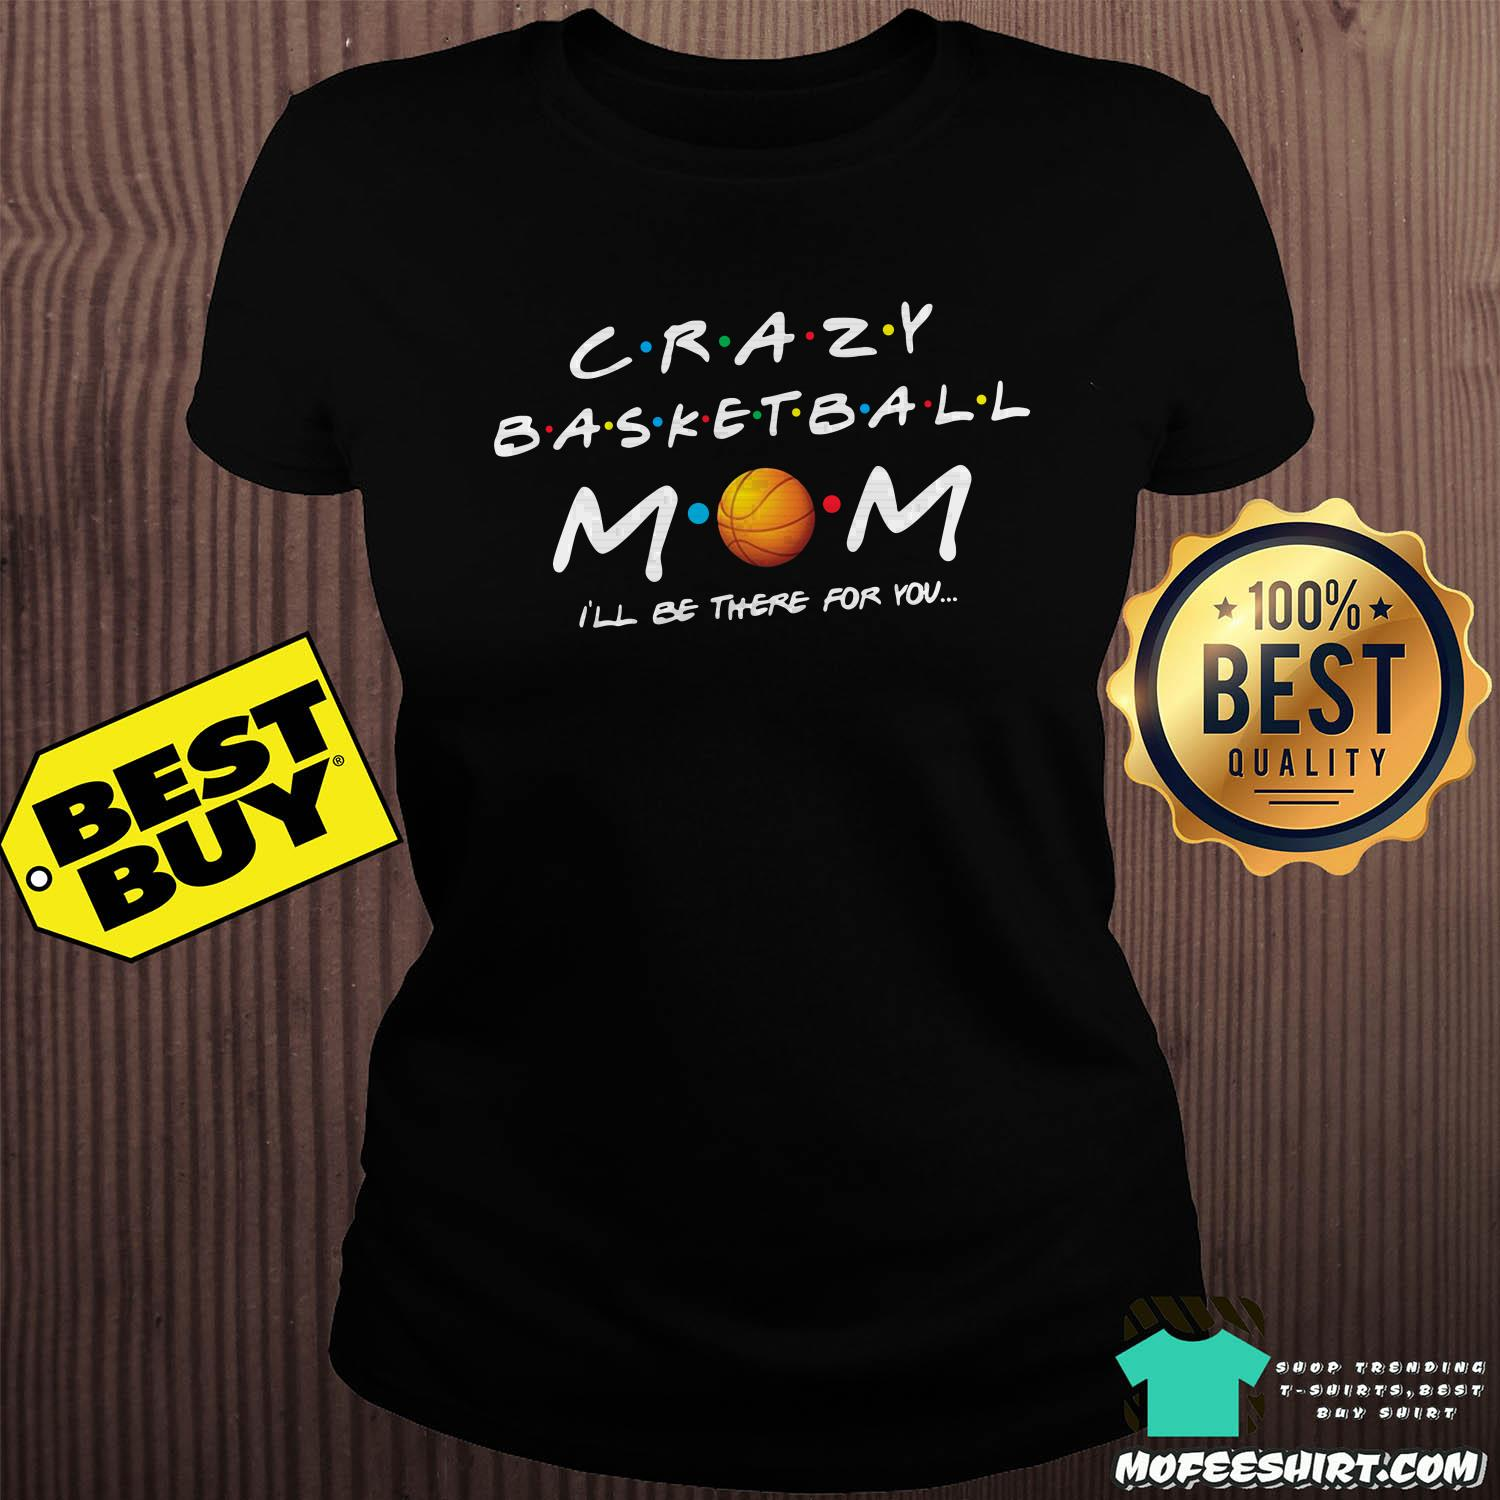 crazy basketball mom ill be there for you shirt ladies tee - Crazy Basketball MomI'll be there for you shirt